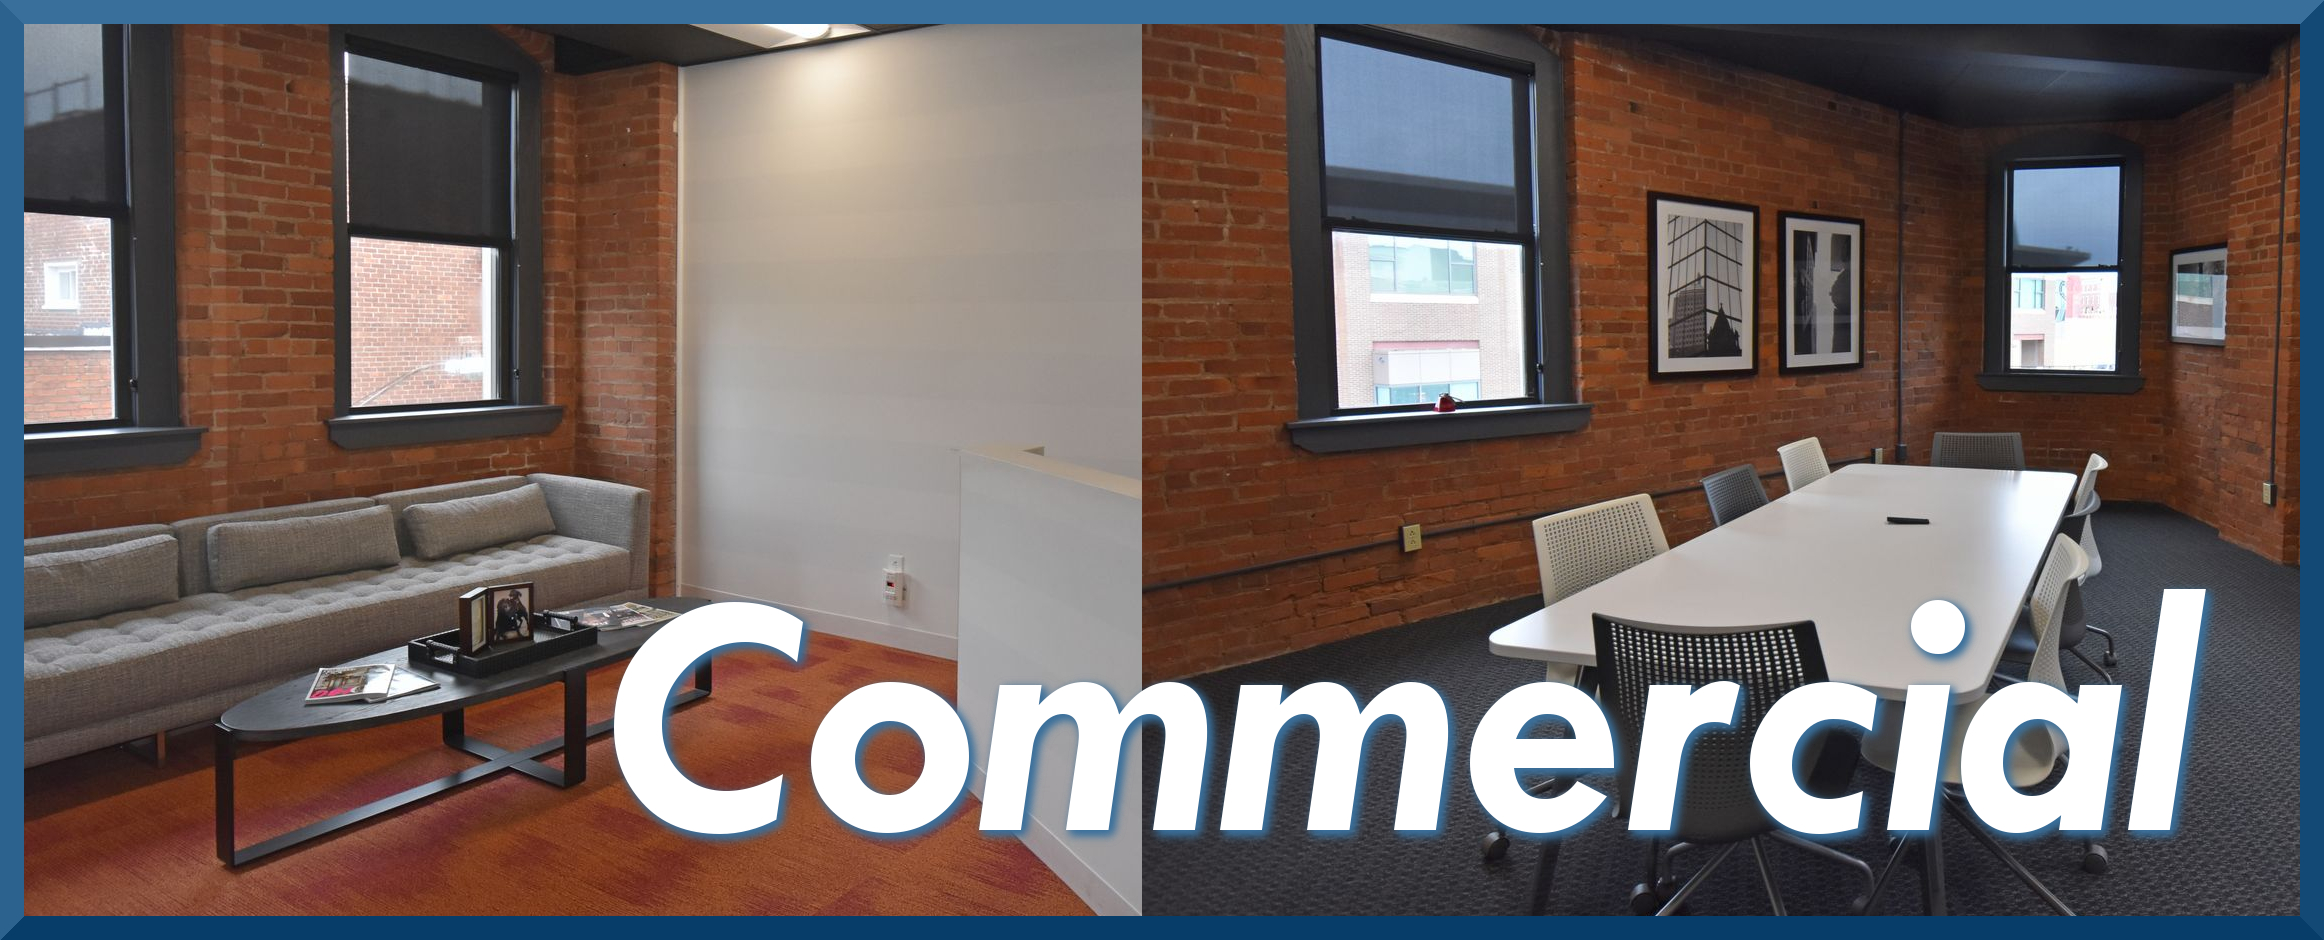 Downtown Commercial Space Rentals Downtown Pittsfield MA